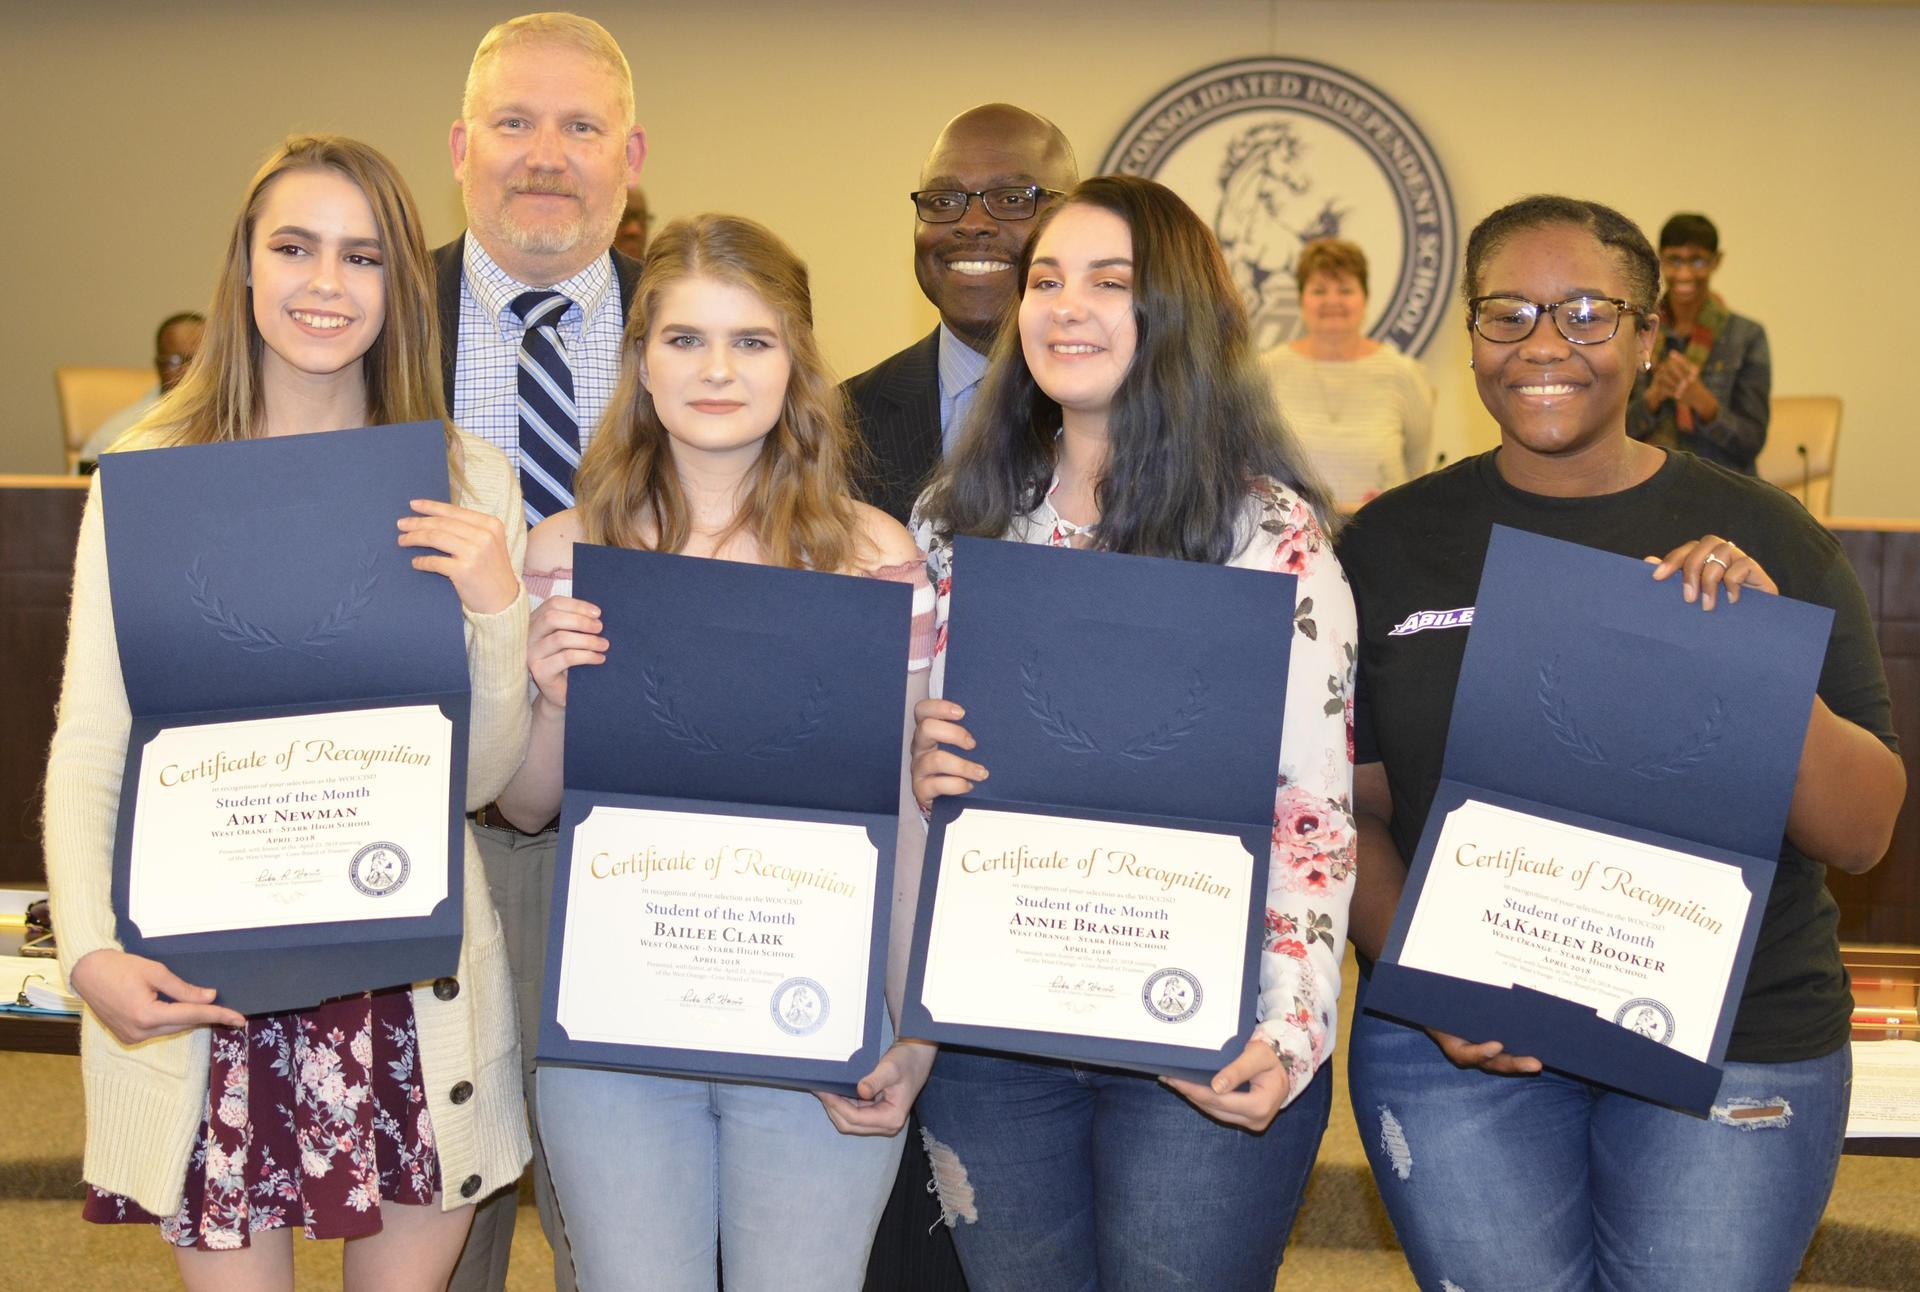 WOS High School Journalism Students accepting Student of the month